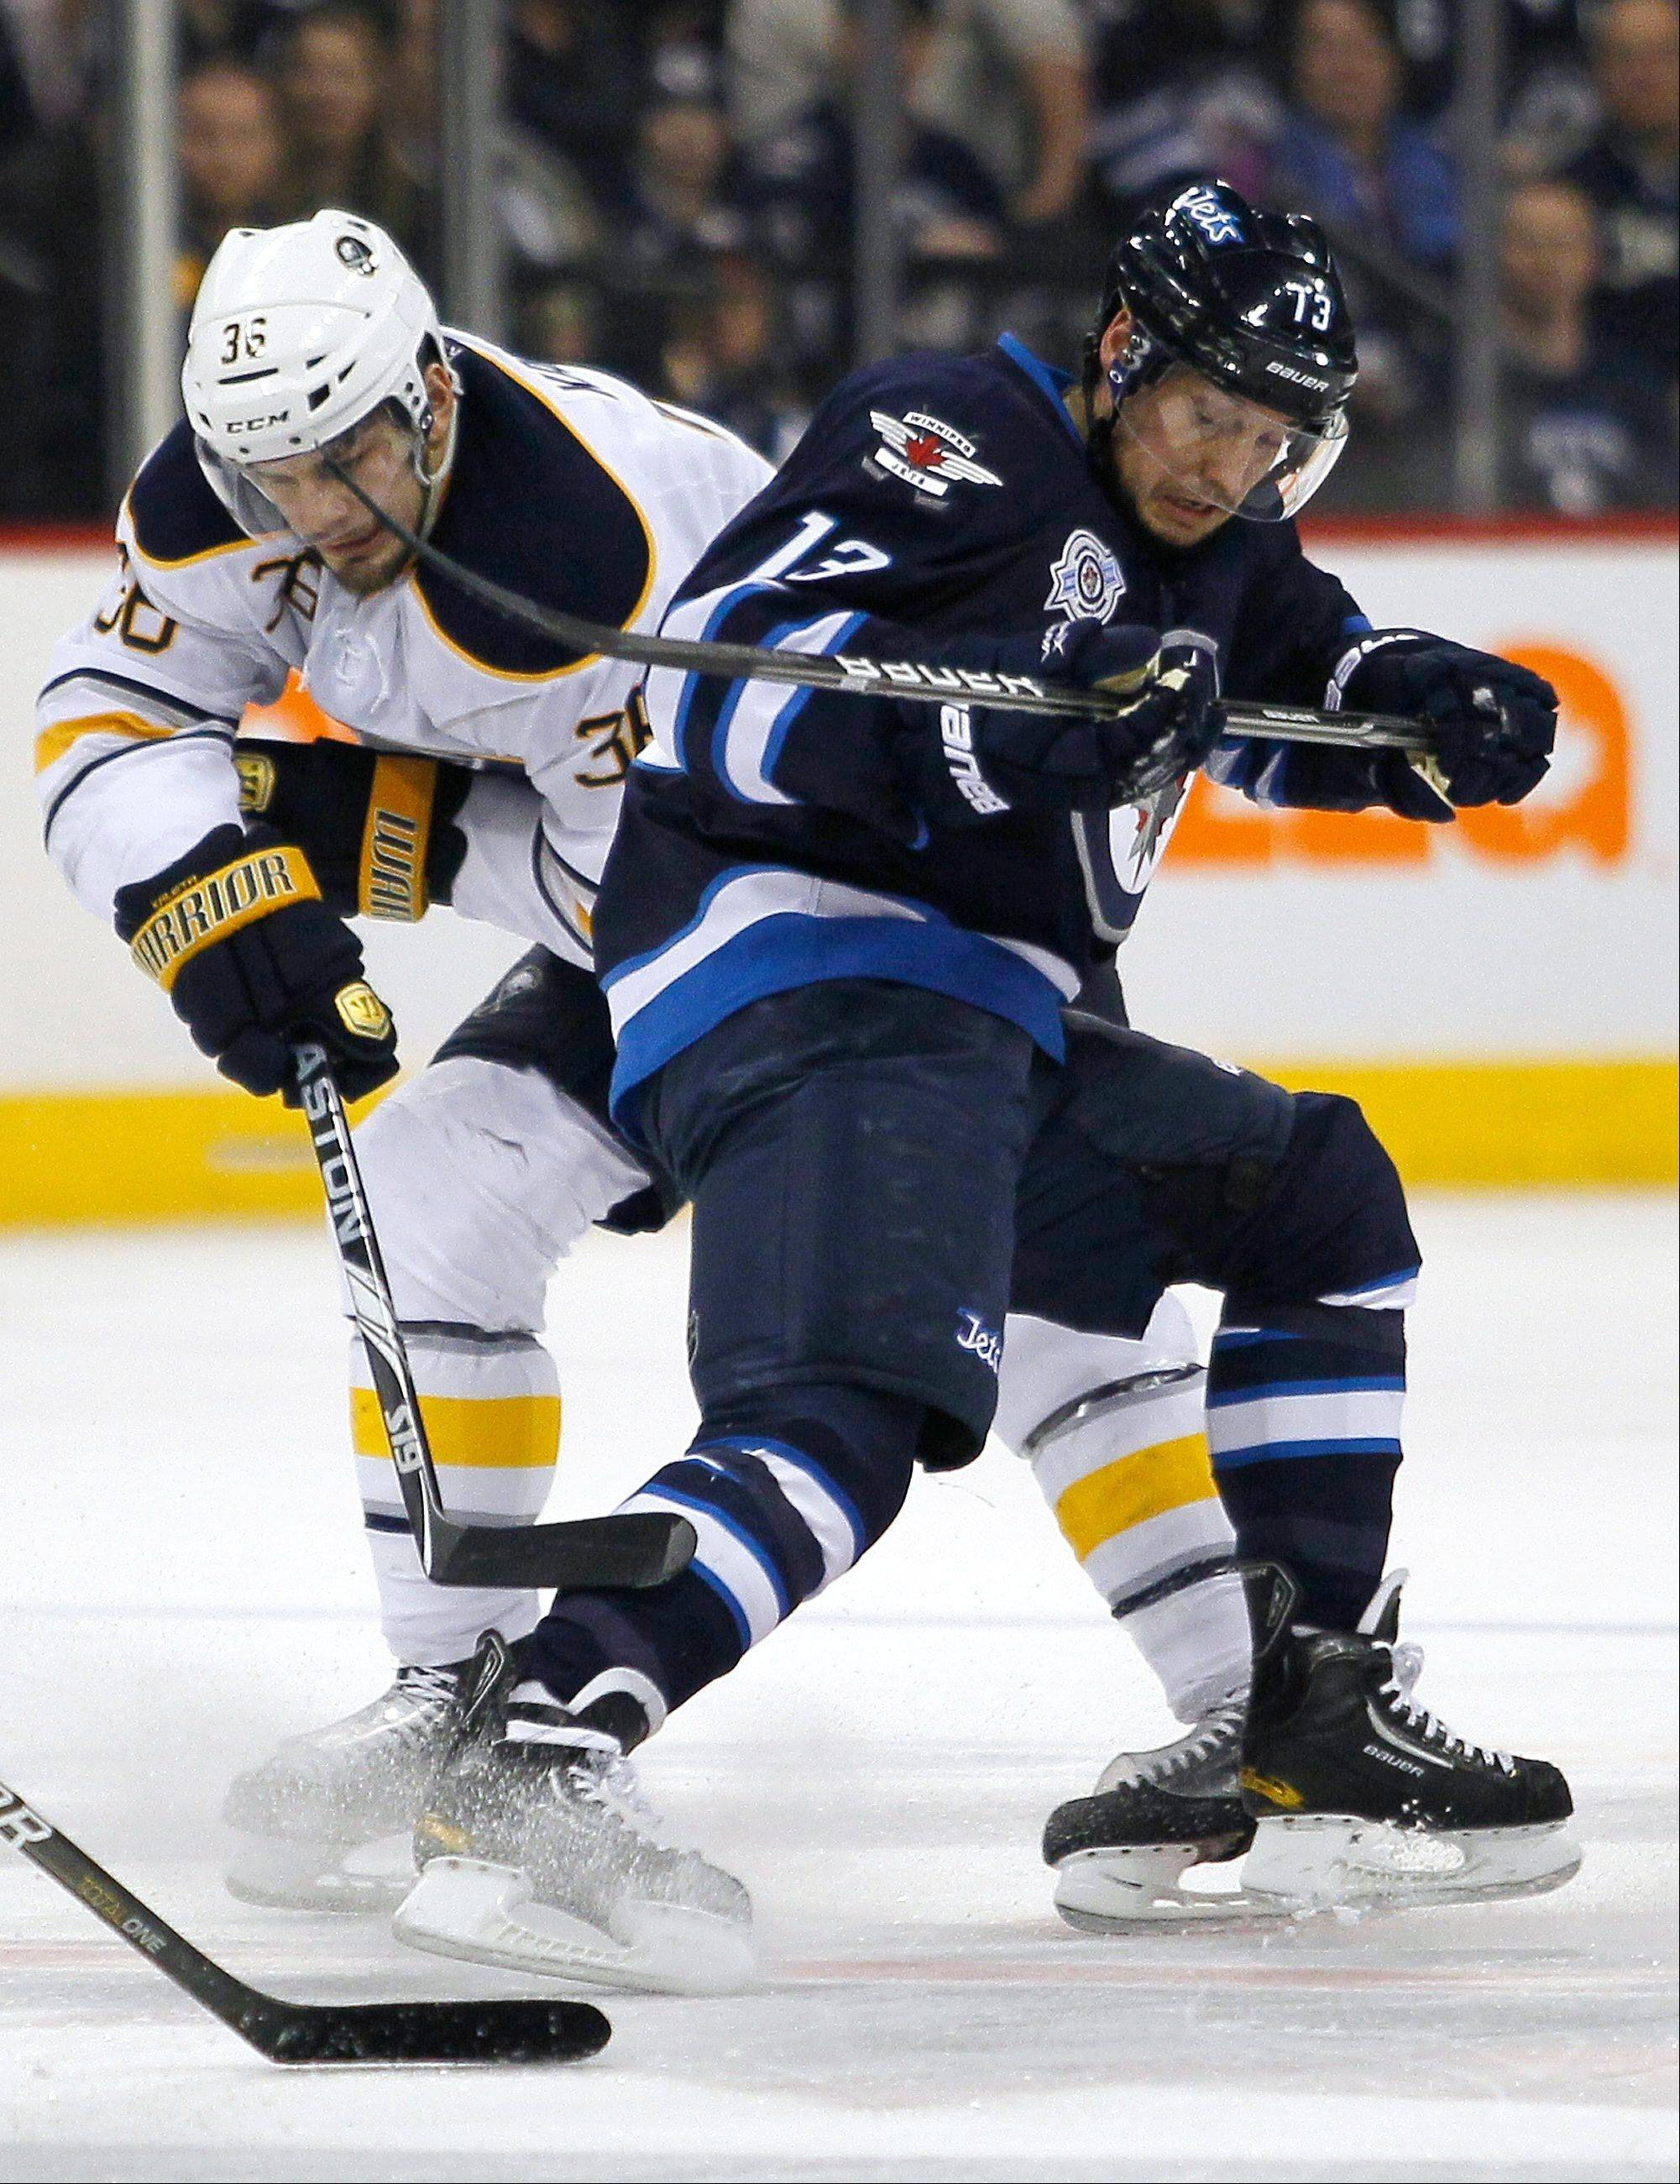 Kyle Wellwood and Buffalo's Patrick Kaleta (36) fight for the puck during second-period action two seasons ago. Kaleta is one of the dirtiest players in the NHL and Commissioner Gary Bettman refused to lower a 10-game suspension on Thursday.